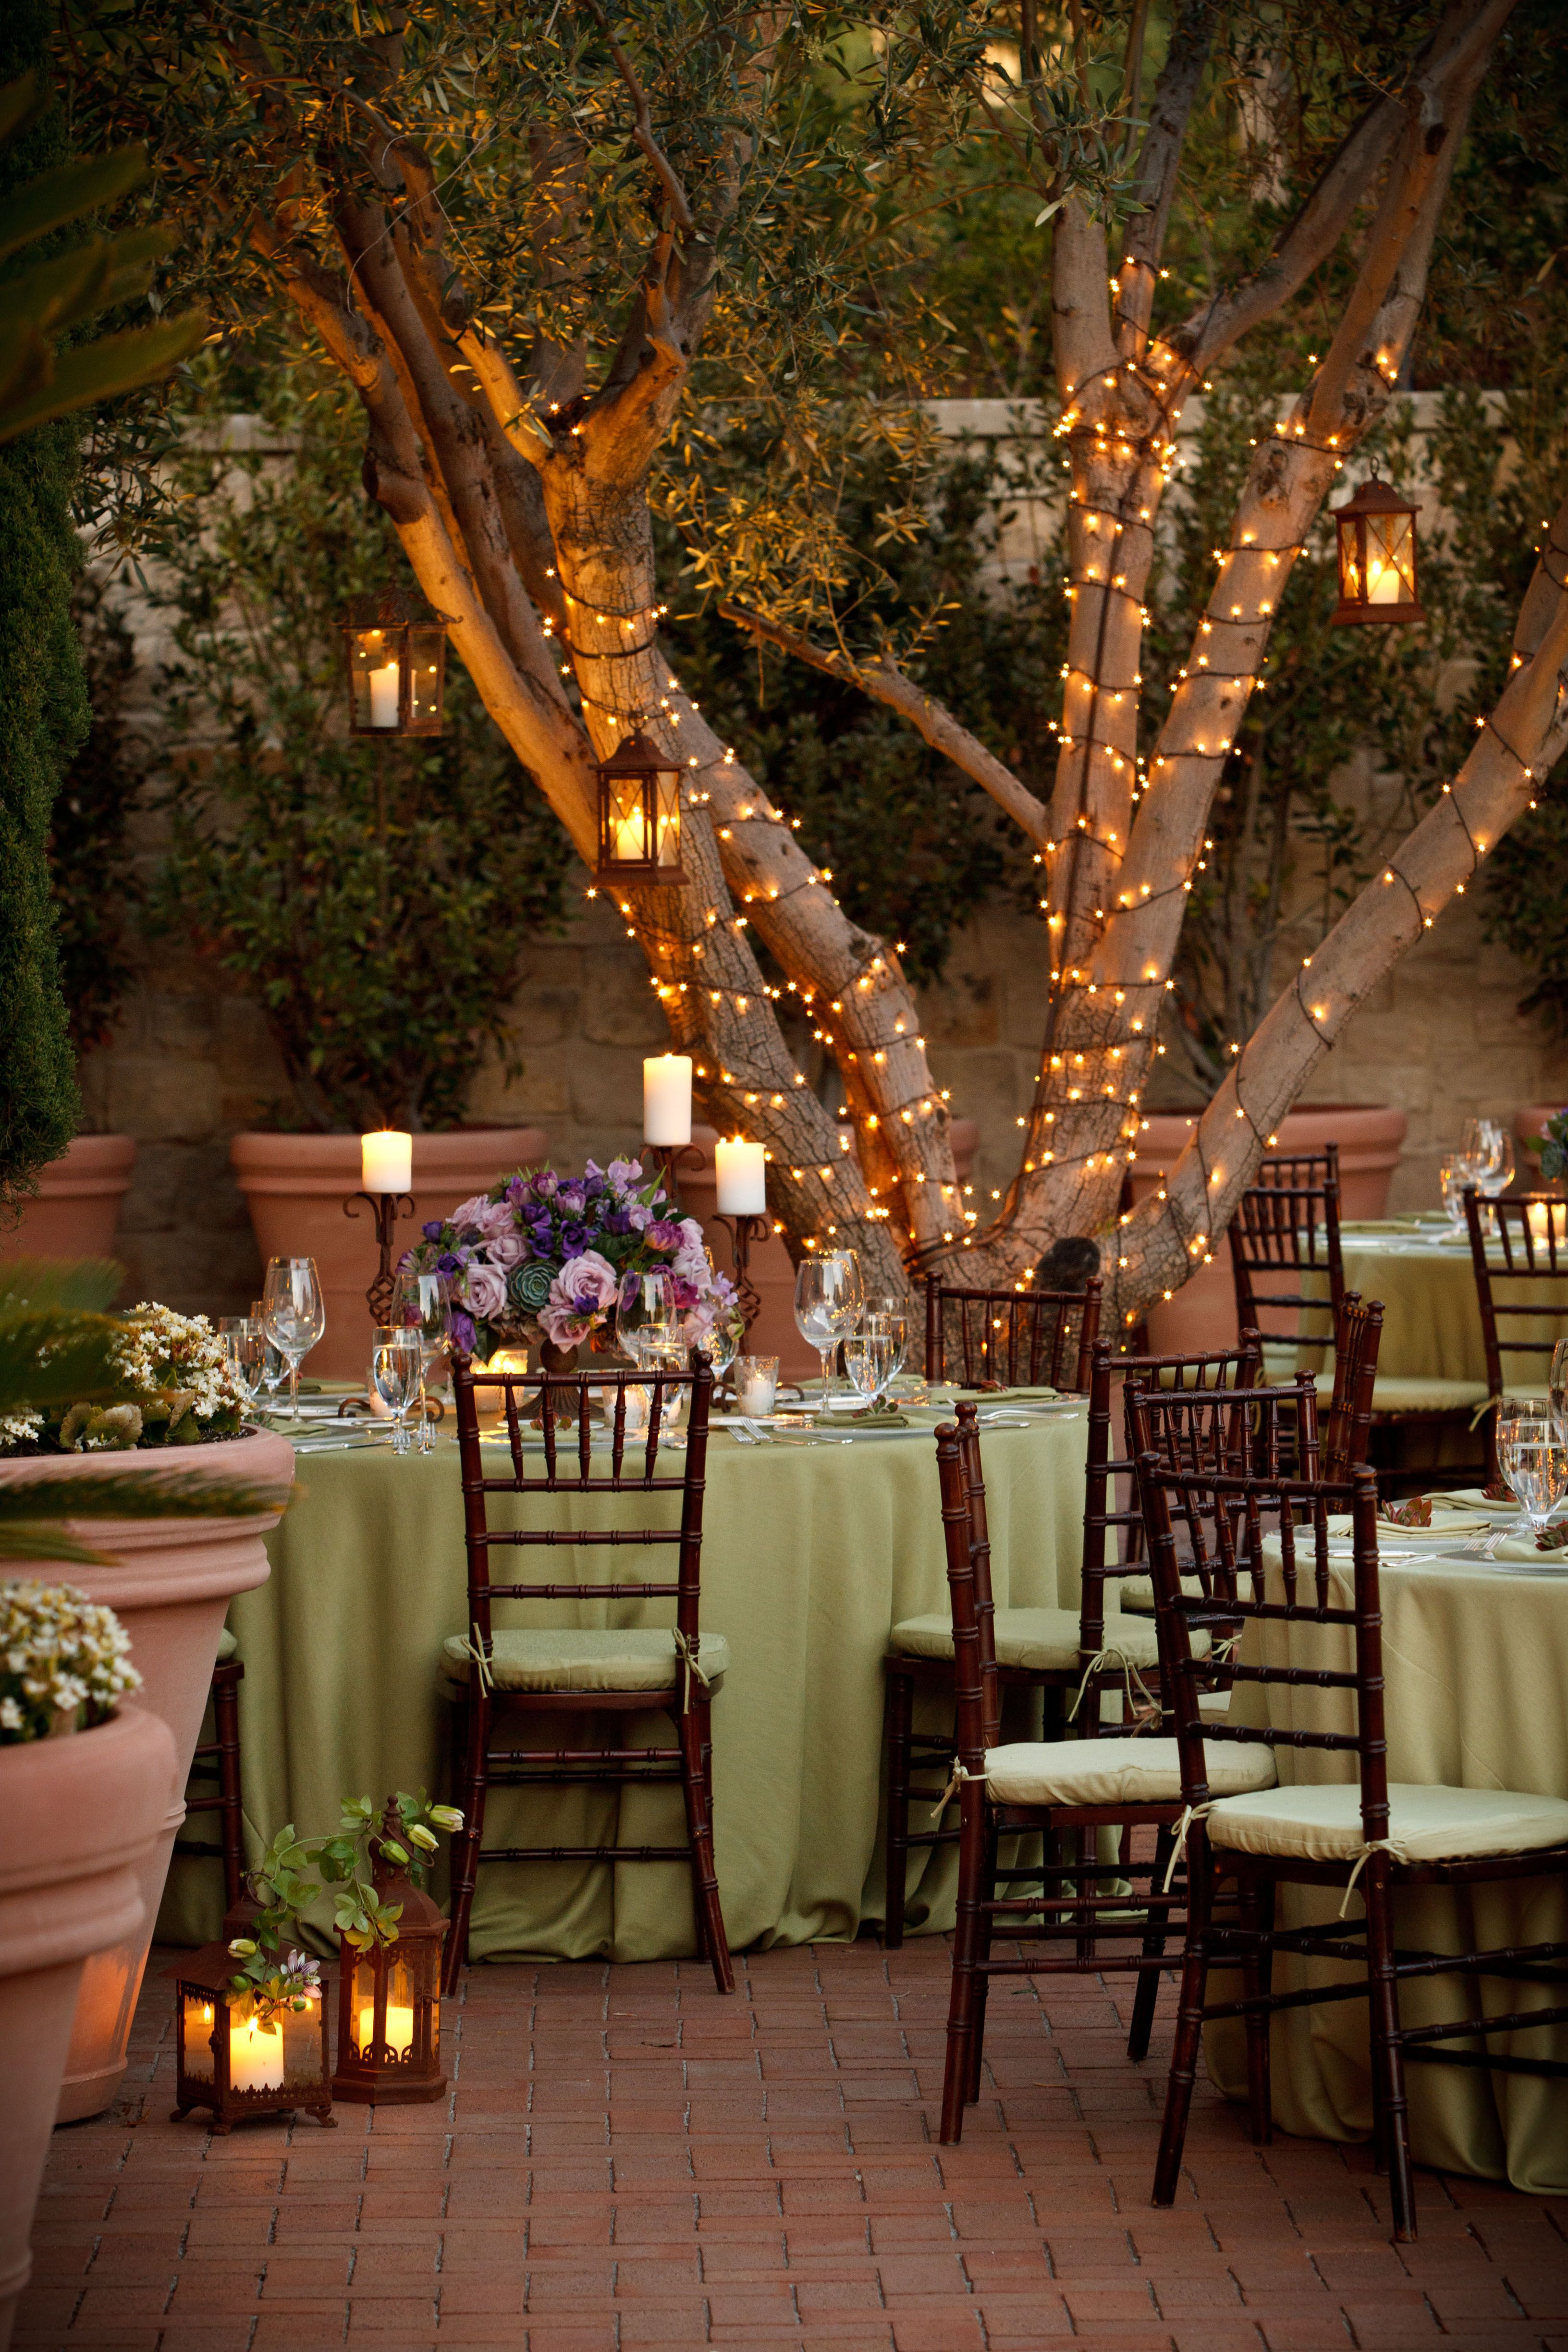 Evening alfresco dining outdoor lighting hanging lanterns olive green linens purple roses venue the resort at pelican hill